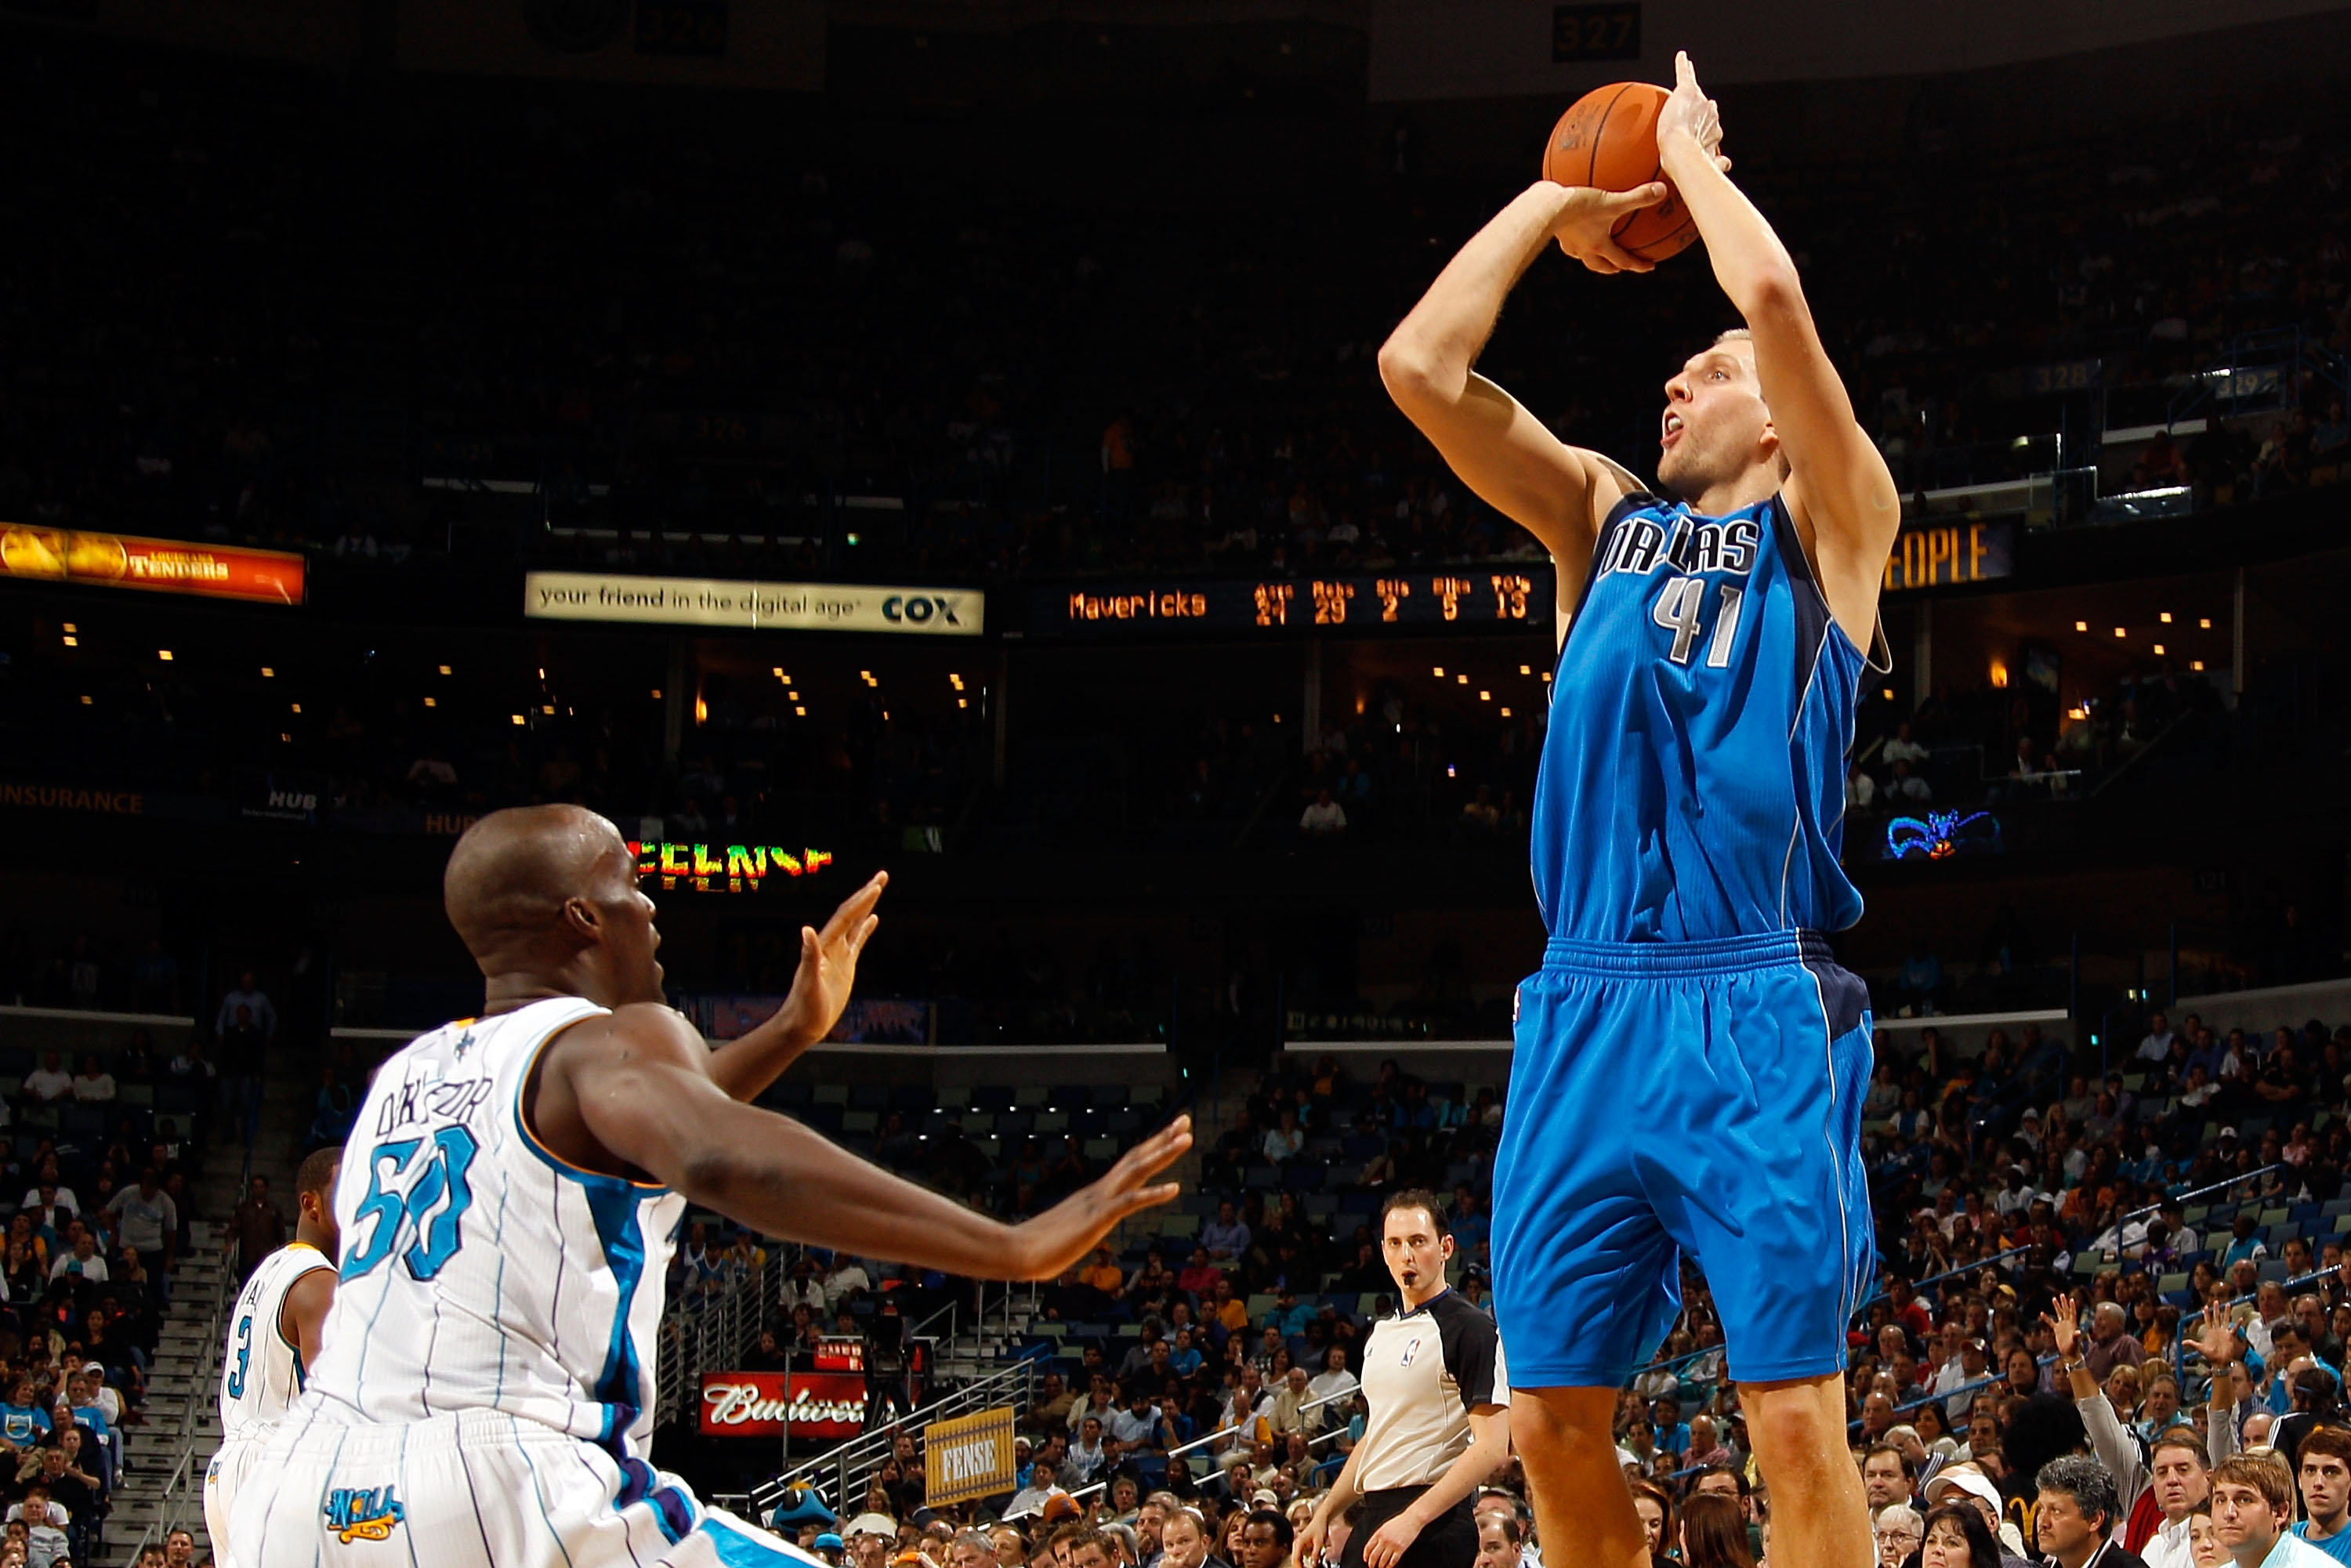 NEW ORLEANS - NOVEMBER 17:  Dirk Nowitzki #41 of the Dallas Mavericks shoots the ball over Emeka Okafor #50 of the New Orleans Hornets at the New Orleans Arena on November 17, 2010 in New Orleans, Louisiana.  The Hornets defeated the Mavericks 99-97.  NOT